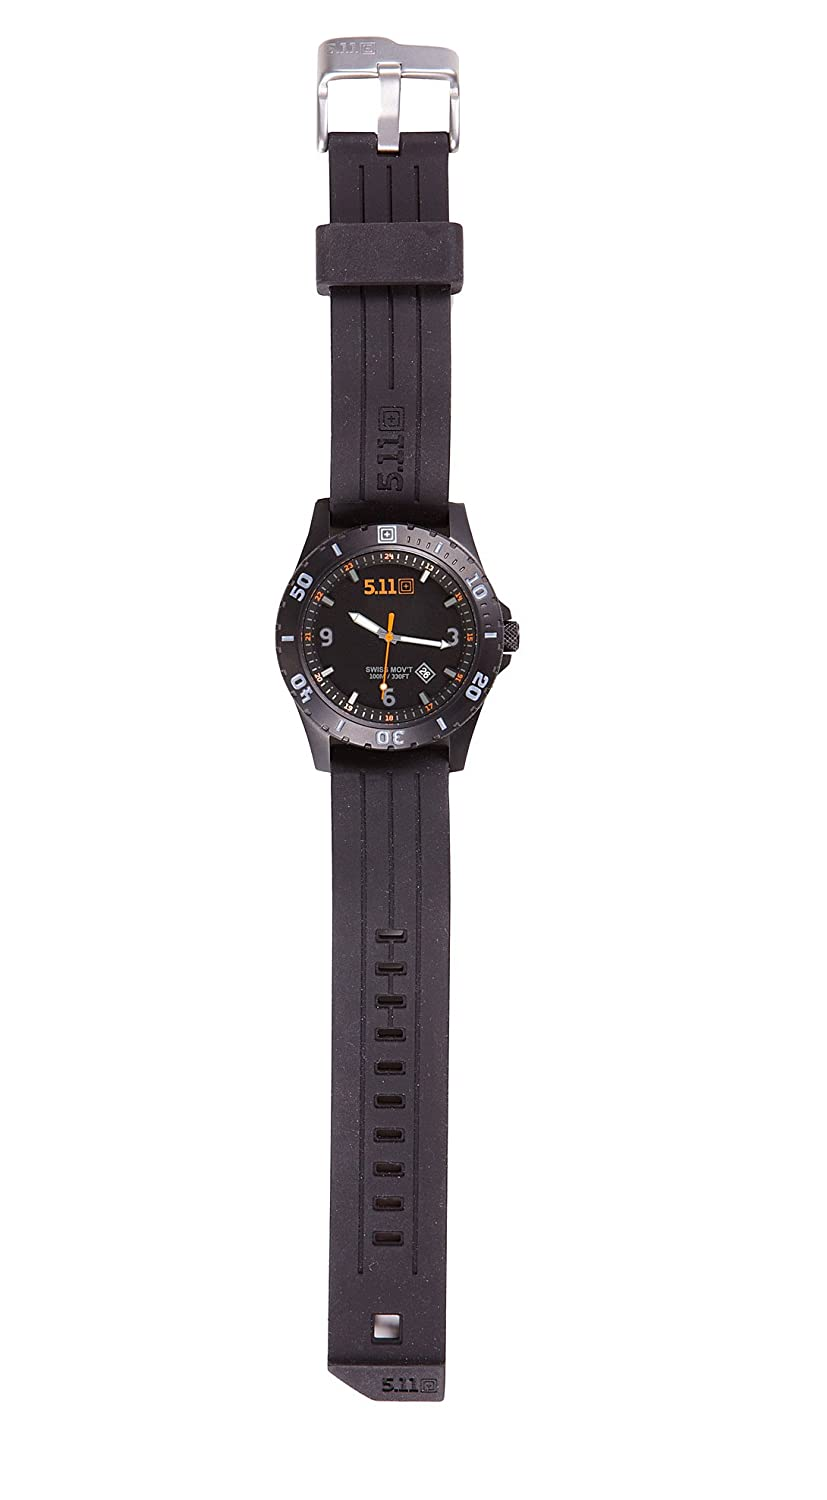 5.11 Tactical Sentinel Watch.